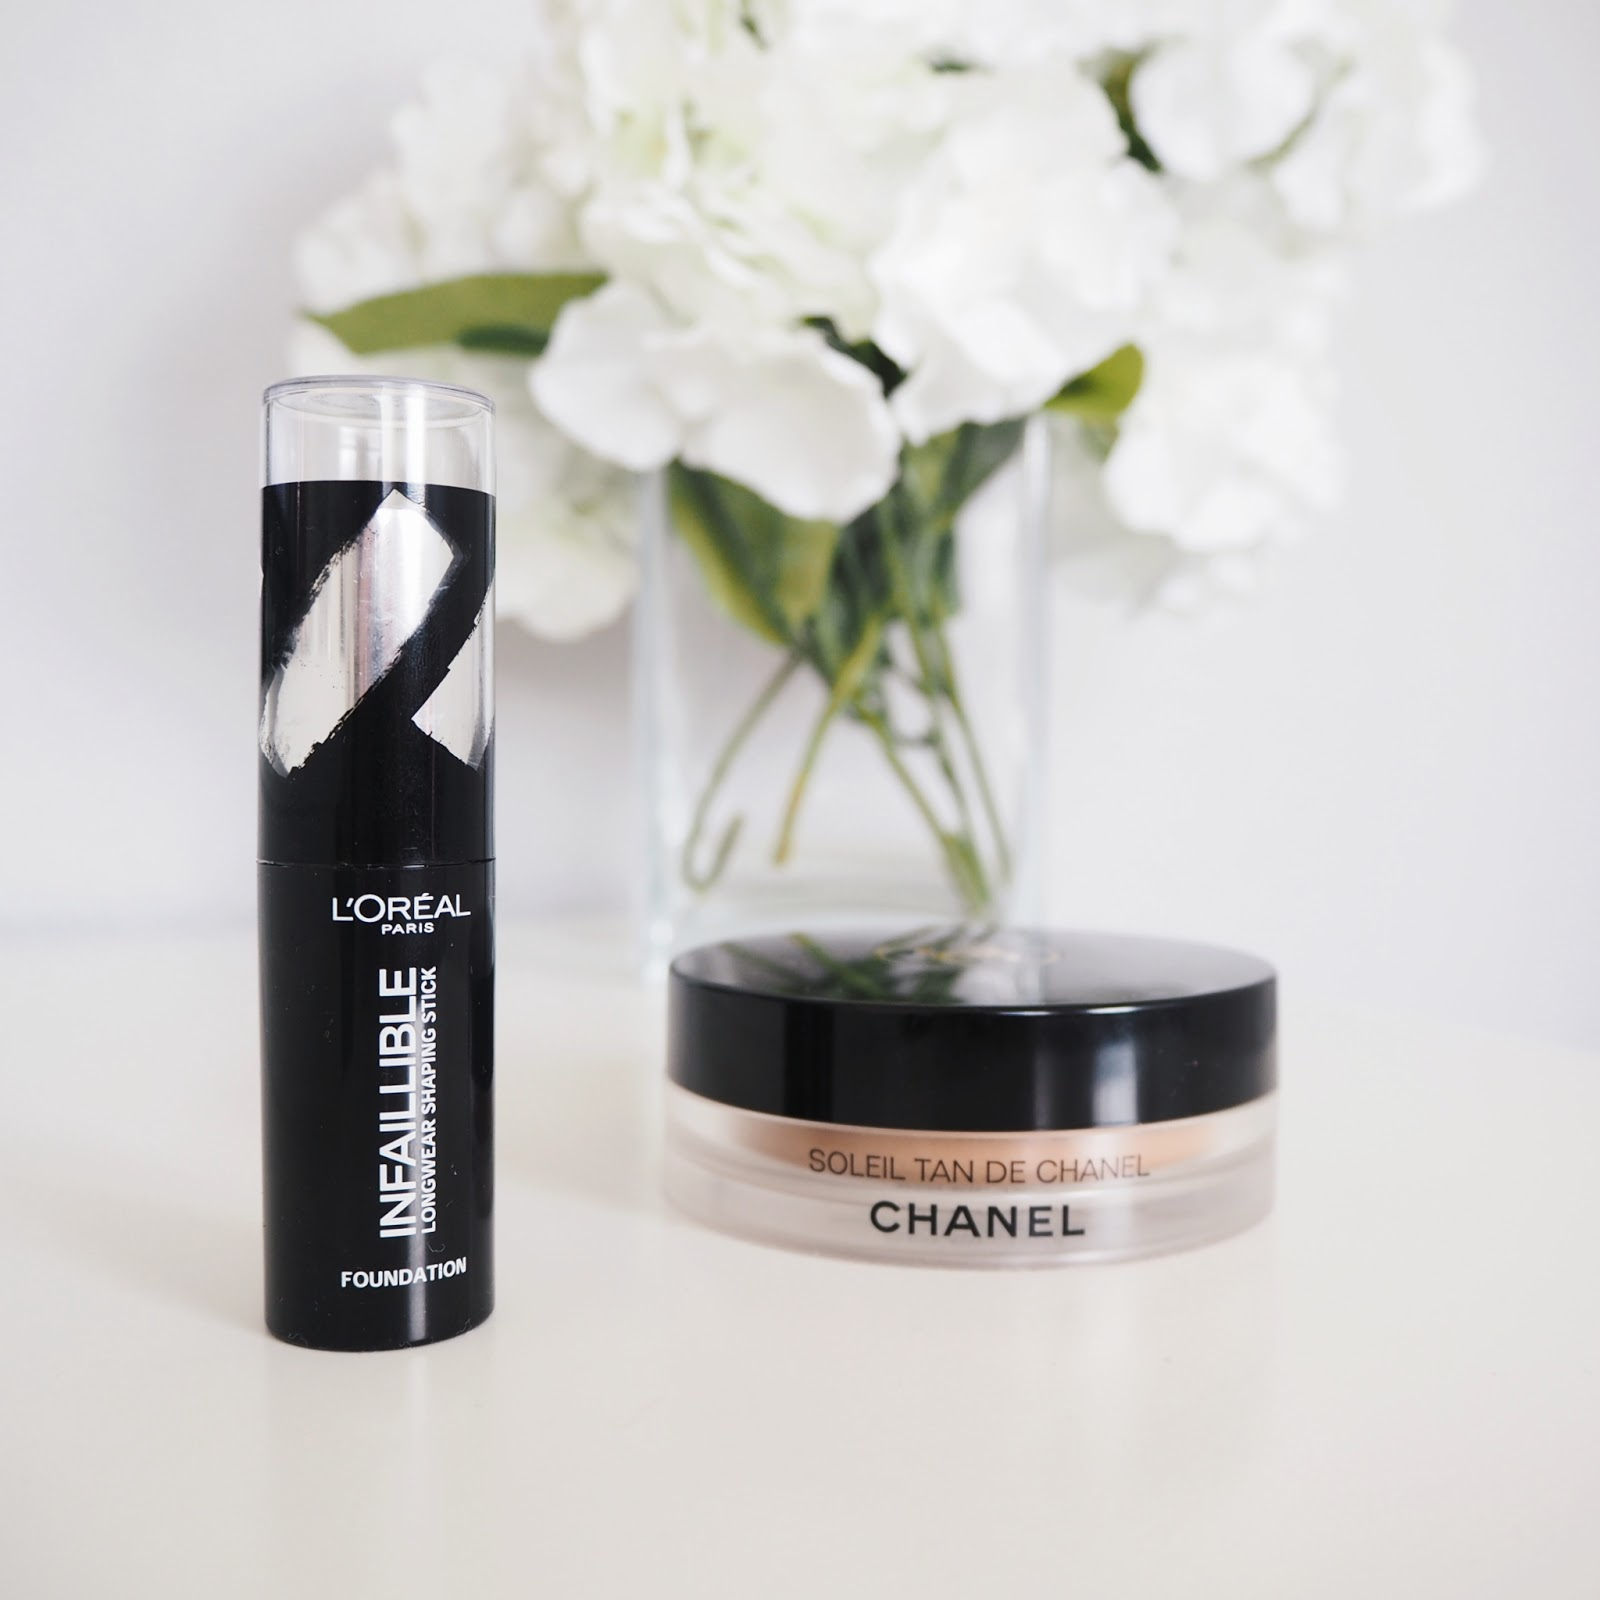 Chanel Soleil Tan De Chanel and L'Oreal Shaping Stick Foundation